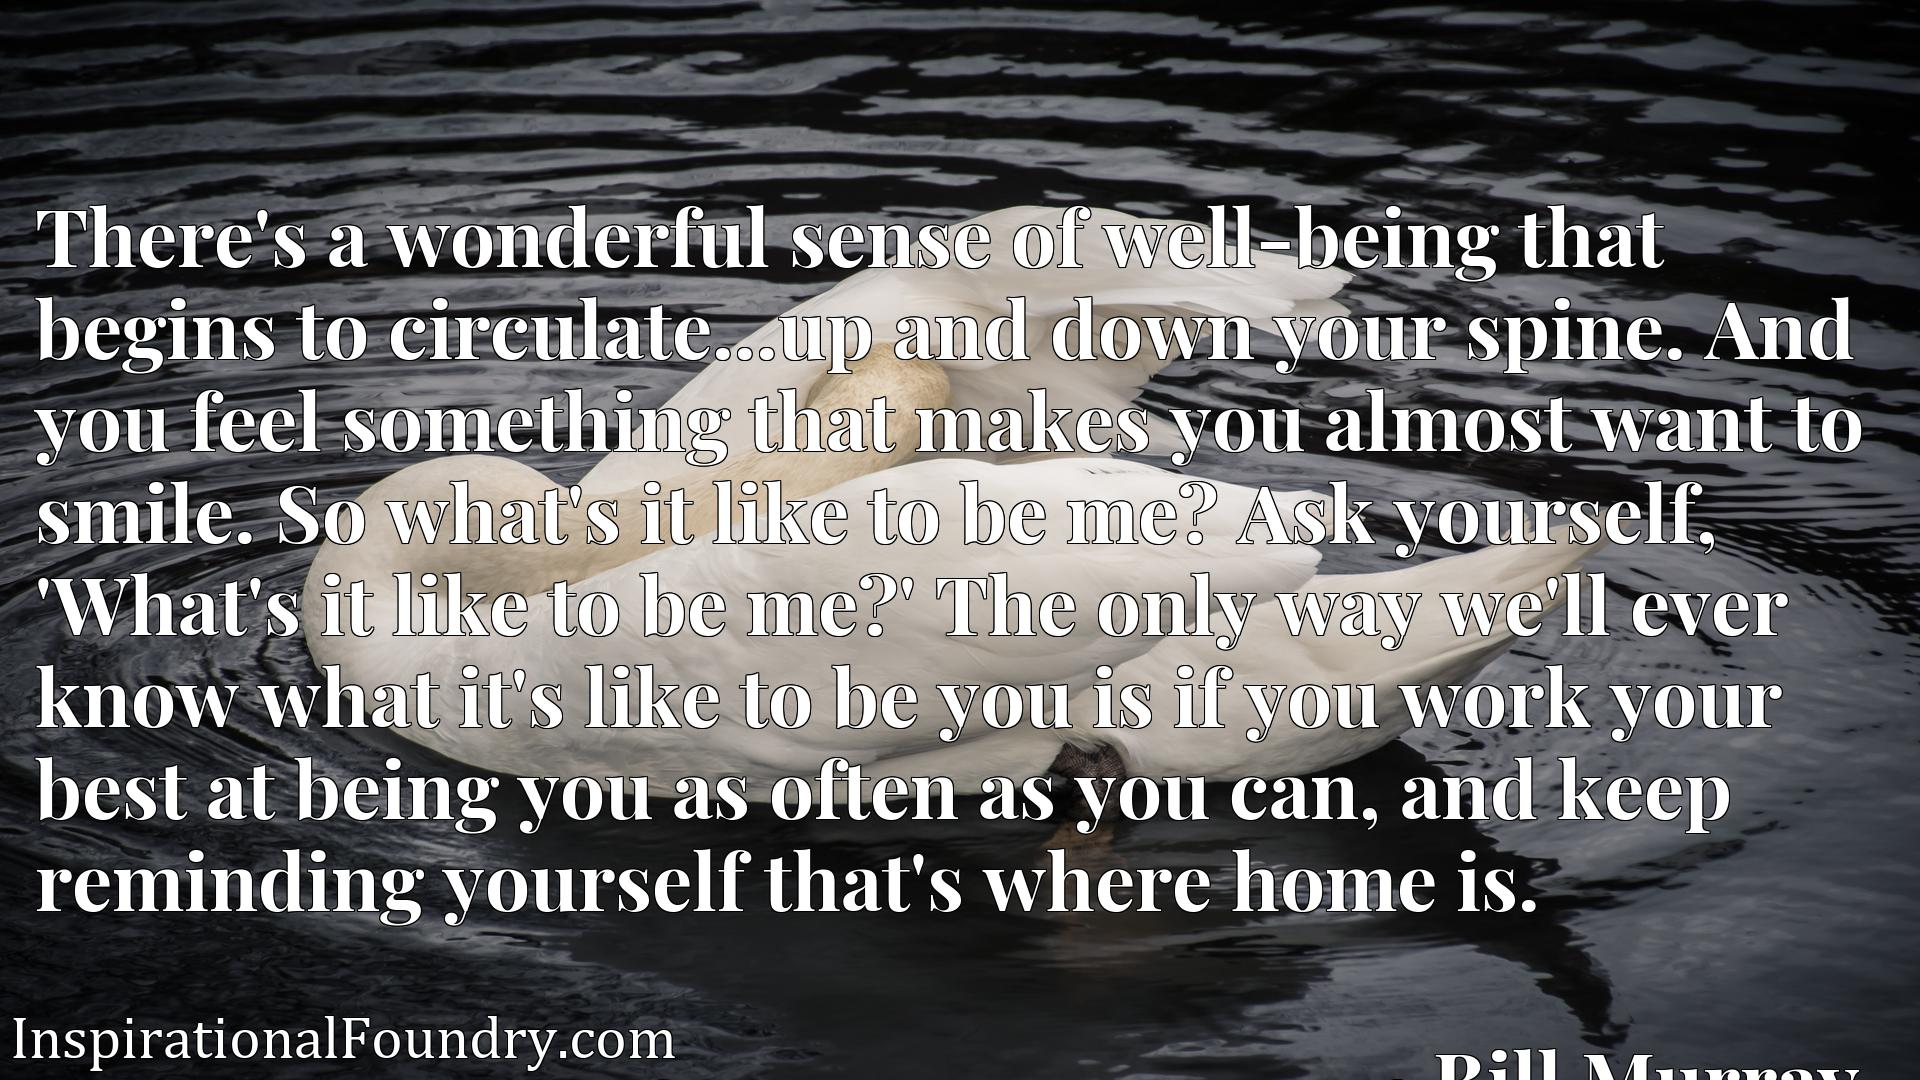 There's a wonderful sense of well-being that begins to circulate...up and down your spine. And you feel something that makes you almost want to smile. So what's it like to be me? Ask yourself, 'What's it like to be me?' The only way we'll ever know what it's like to be you is if you work your best at being you as often as you can, and keep reminding yourself that's where home is.